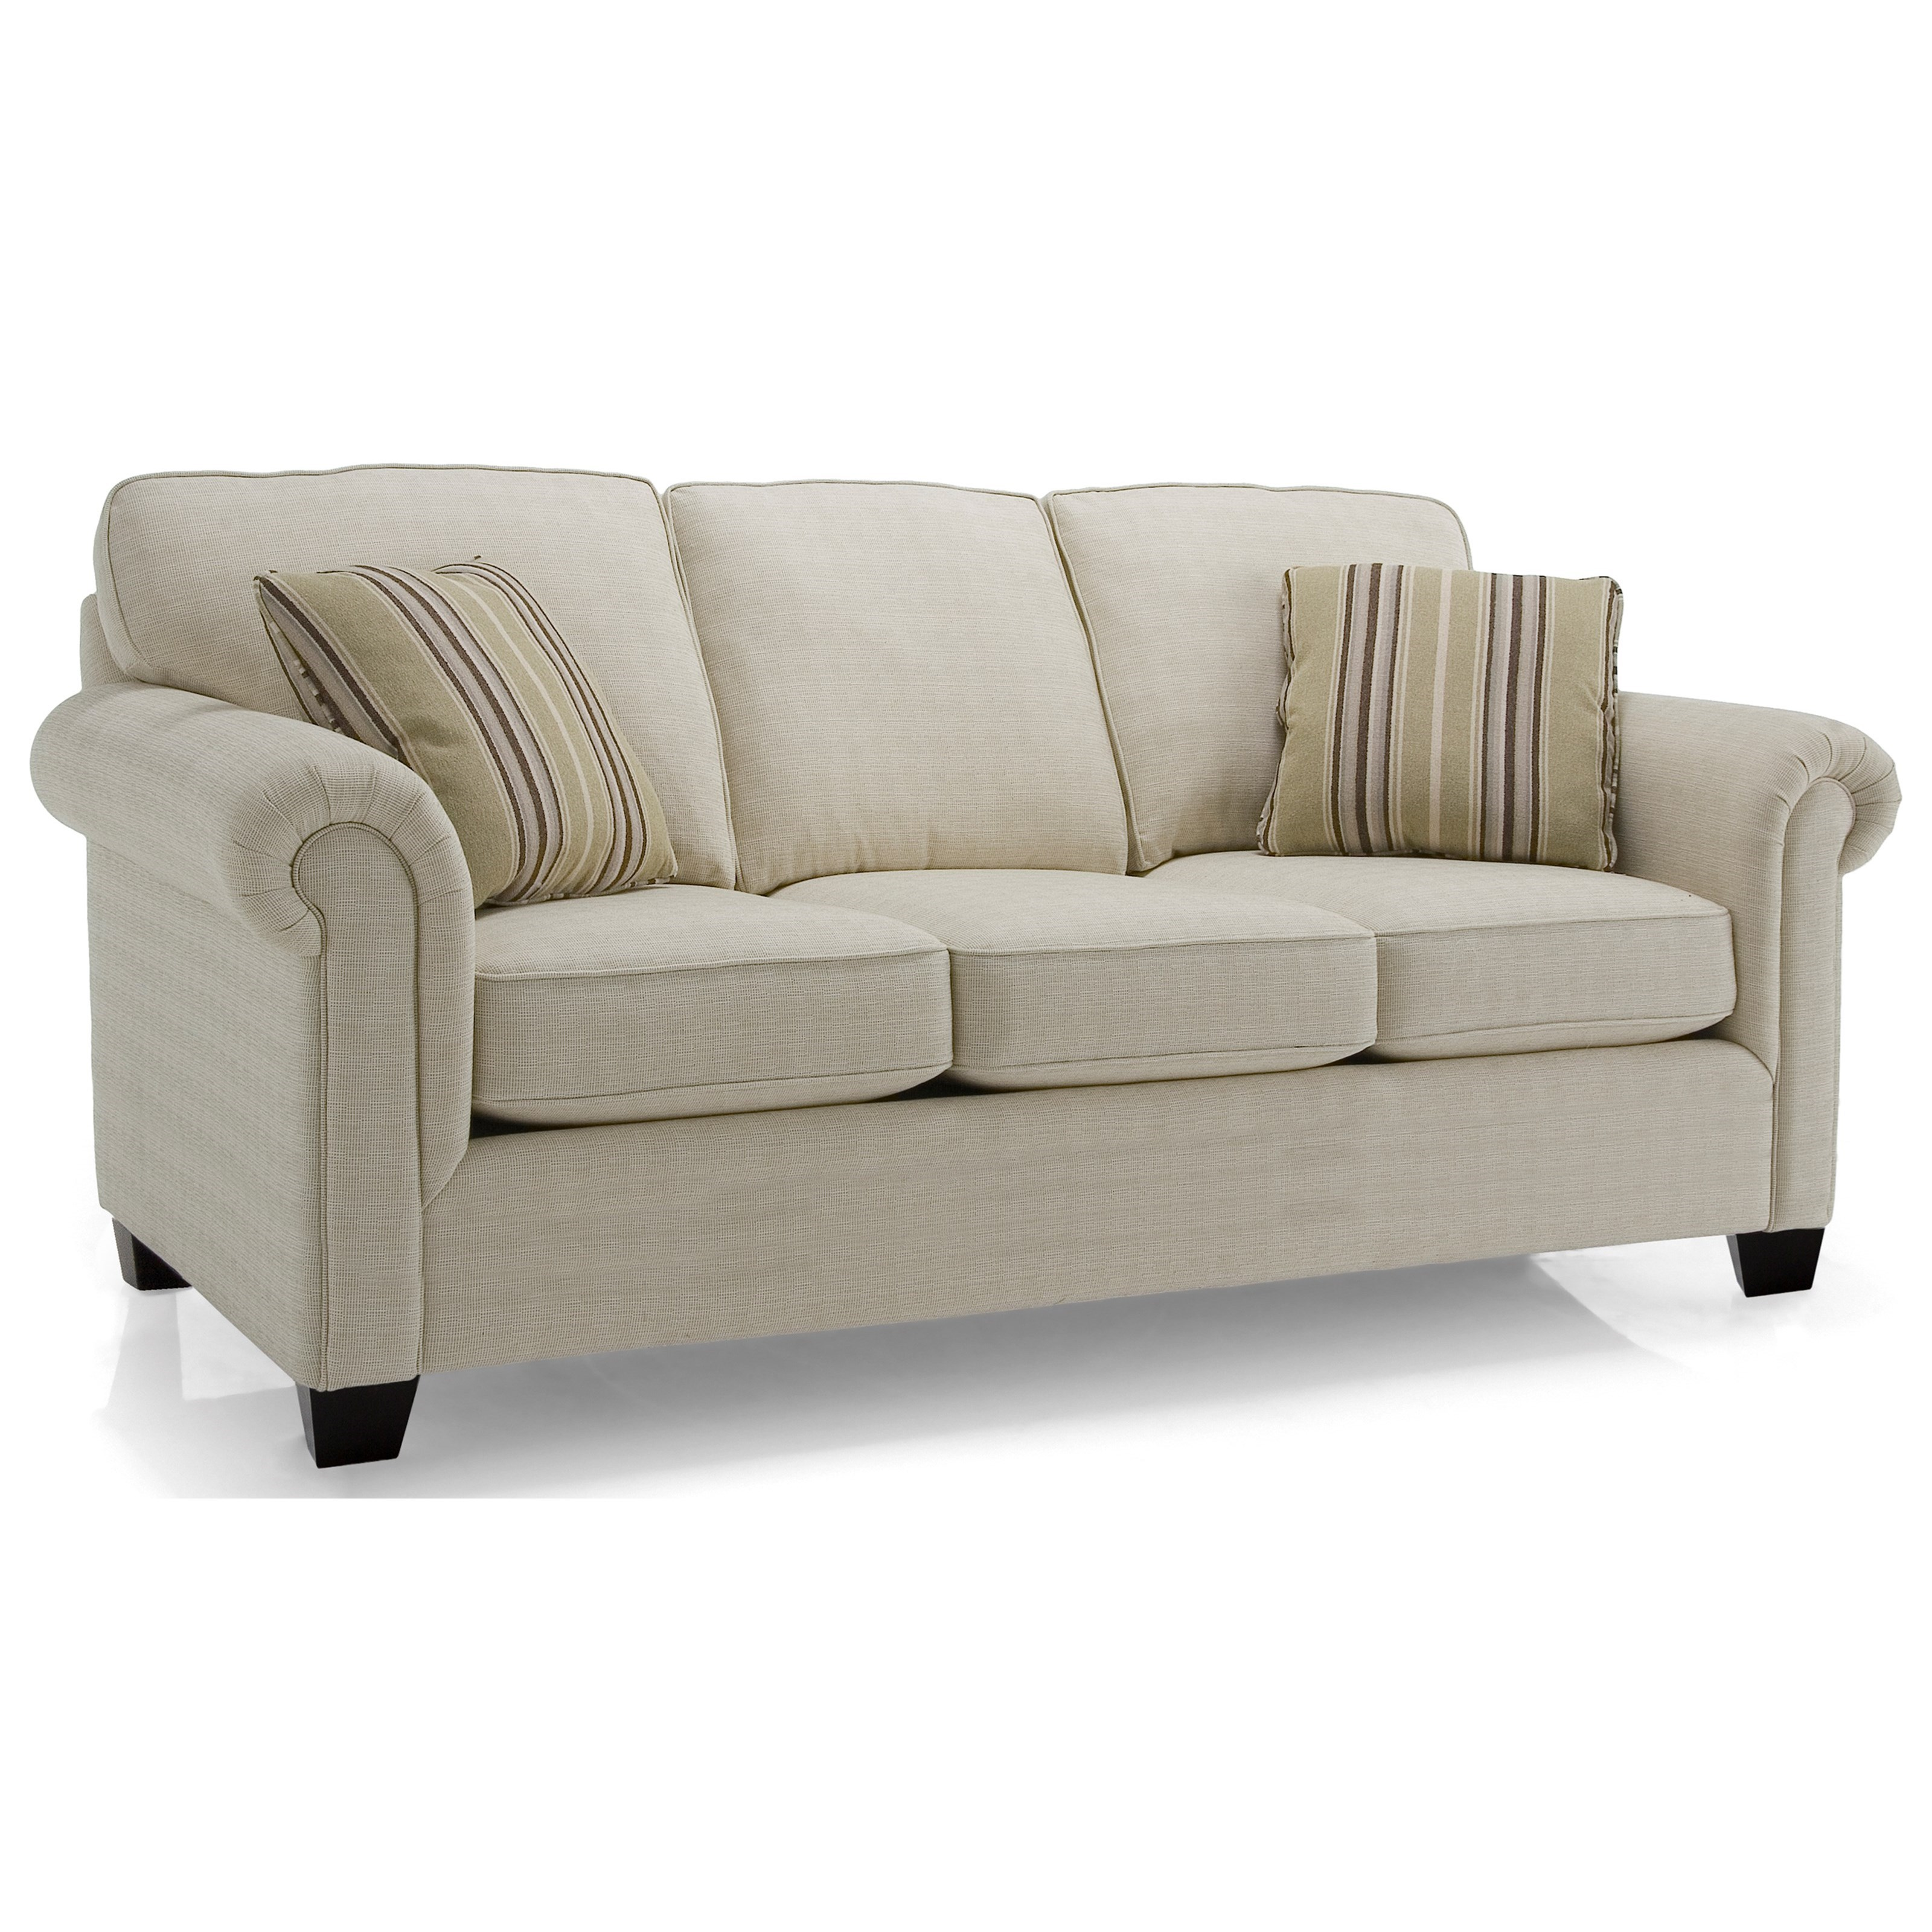 2003 Sofa by Decor-Rest at Stoney Creek Furniture